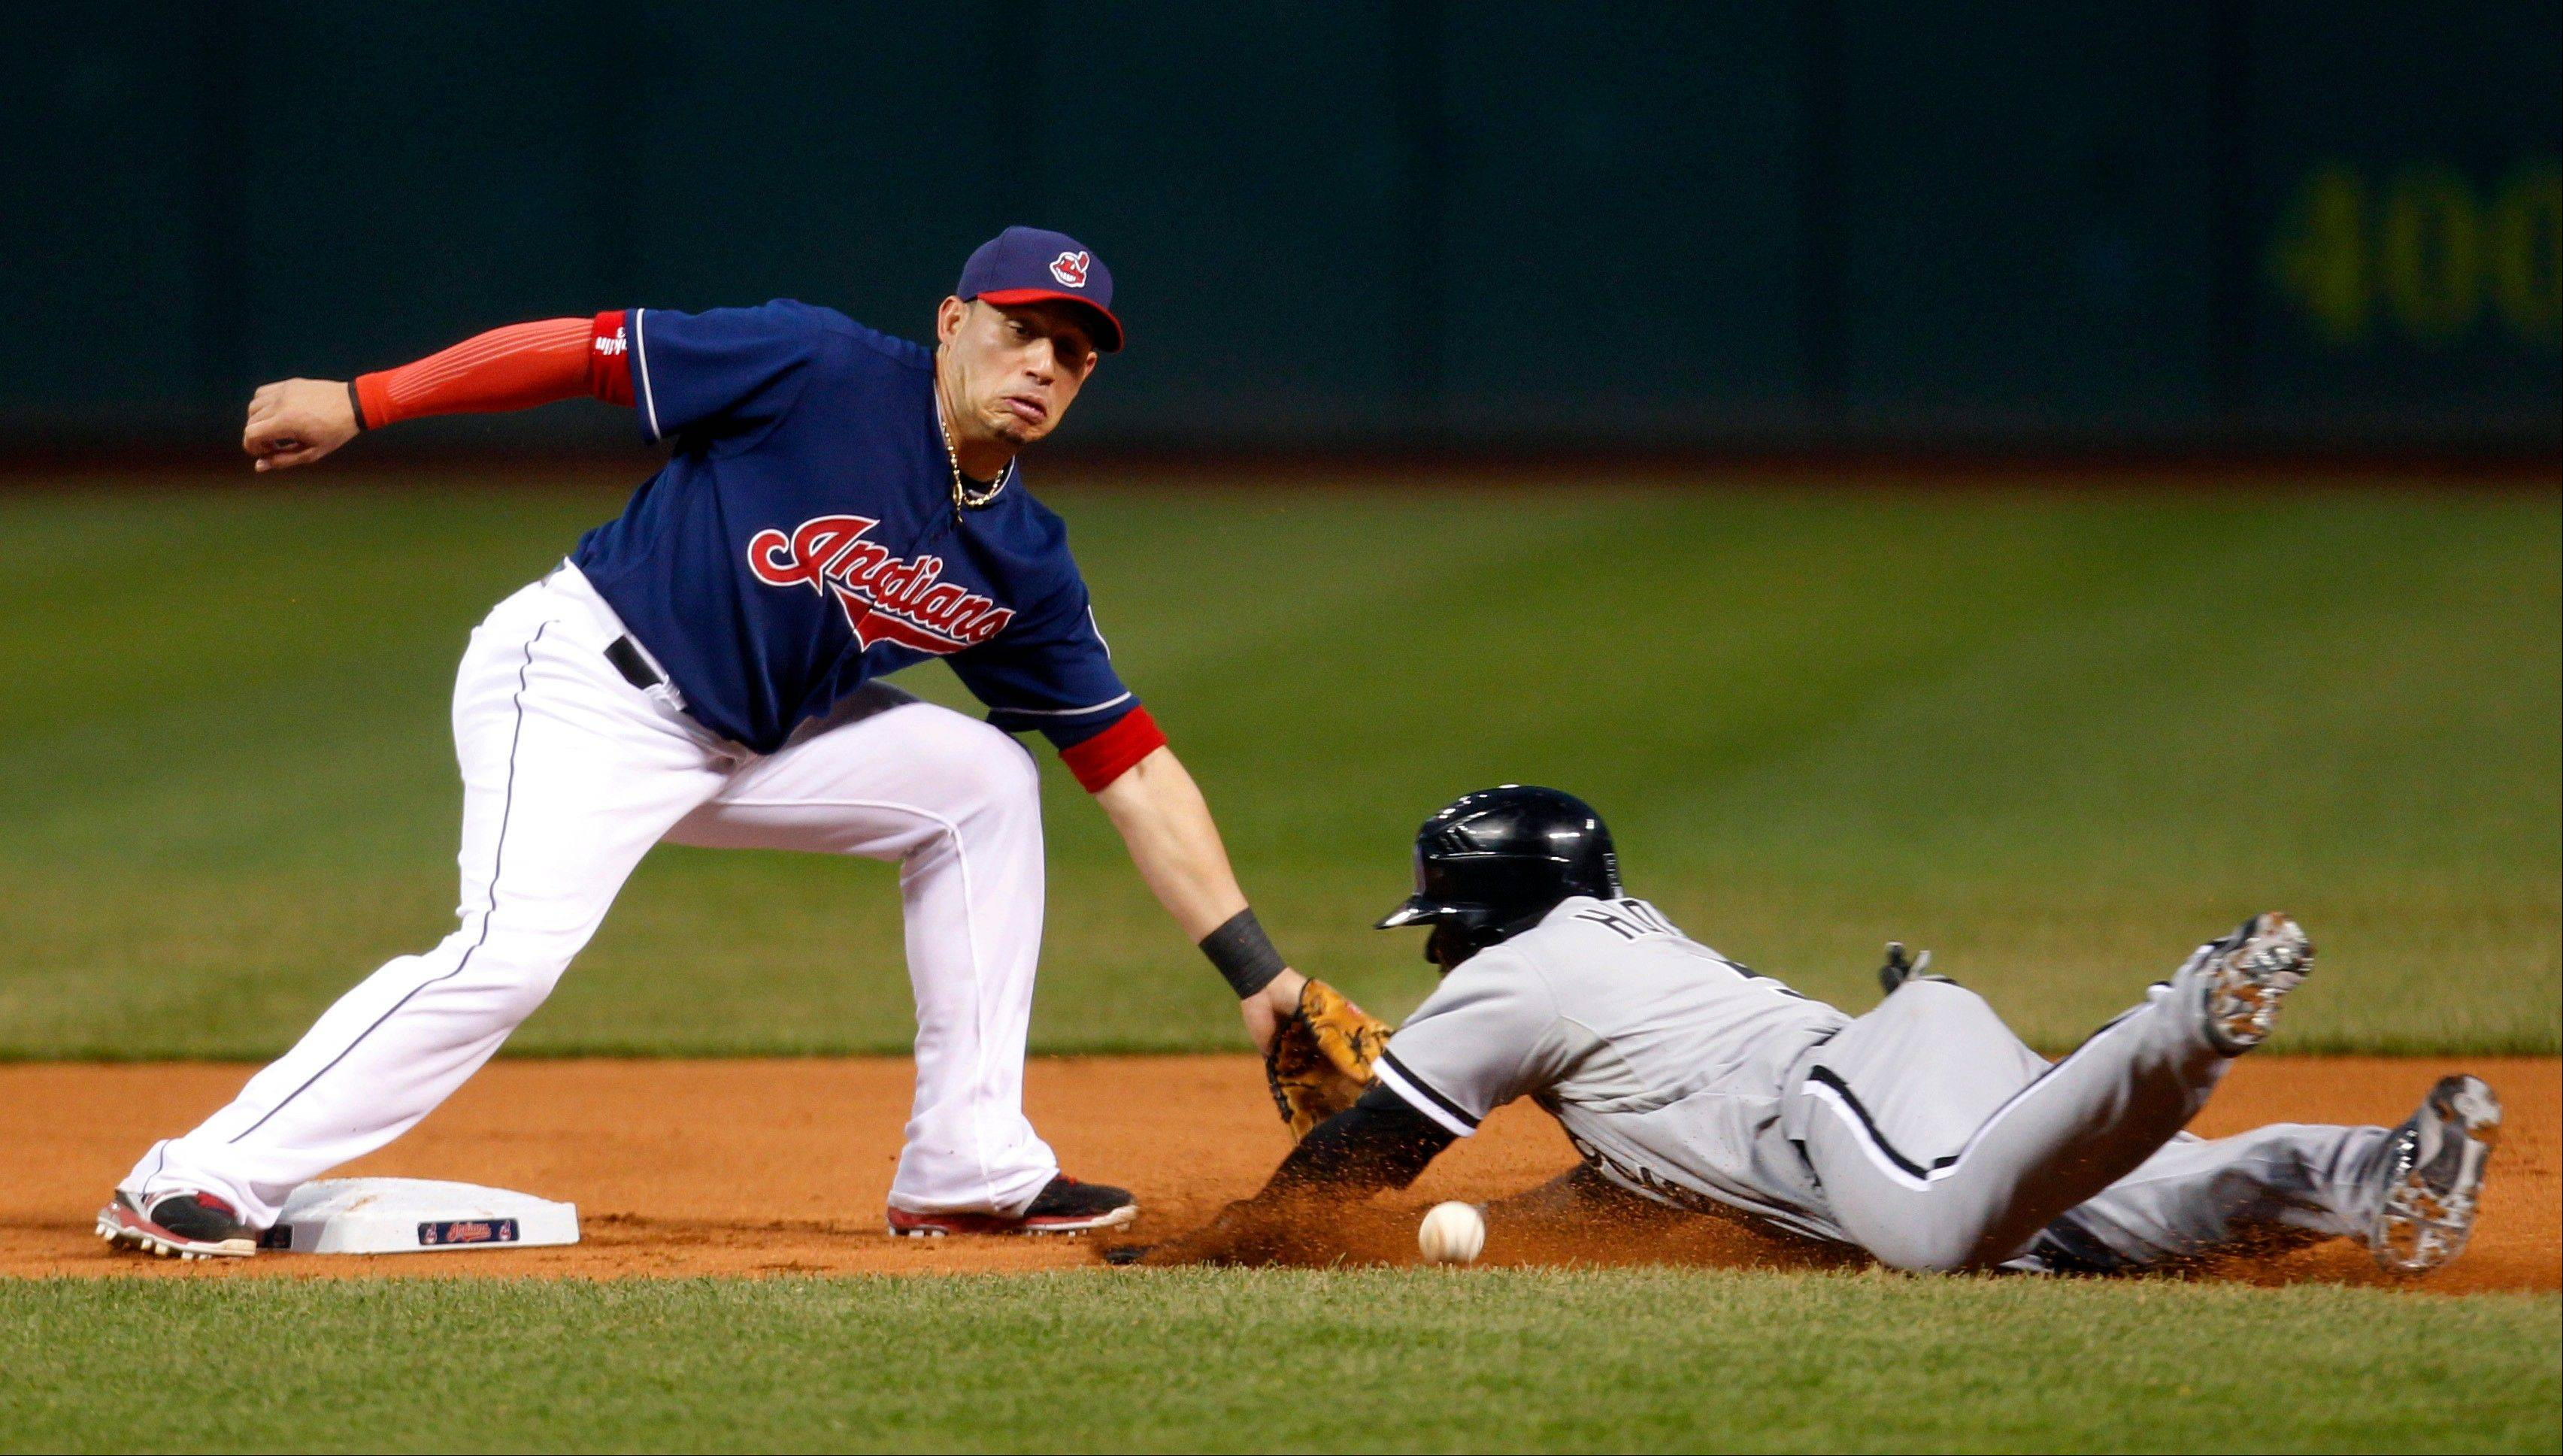 Cleveland Indians shortstop Asdrubal Cabrera, left, waits for the ball as Chicago White Sox's Orlando Hudson slides safely into second base on a steal in the first inning of a baseball game, Tuesday, Oct. 2, 2012, in Cleveland.